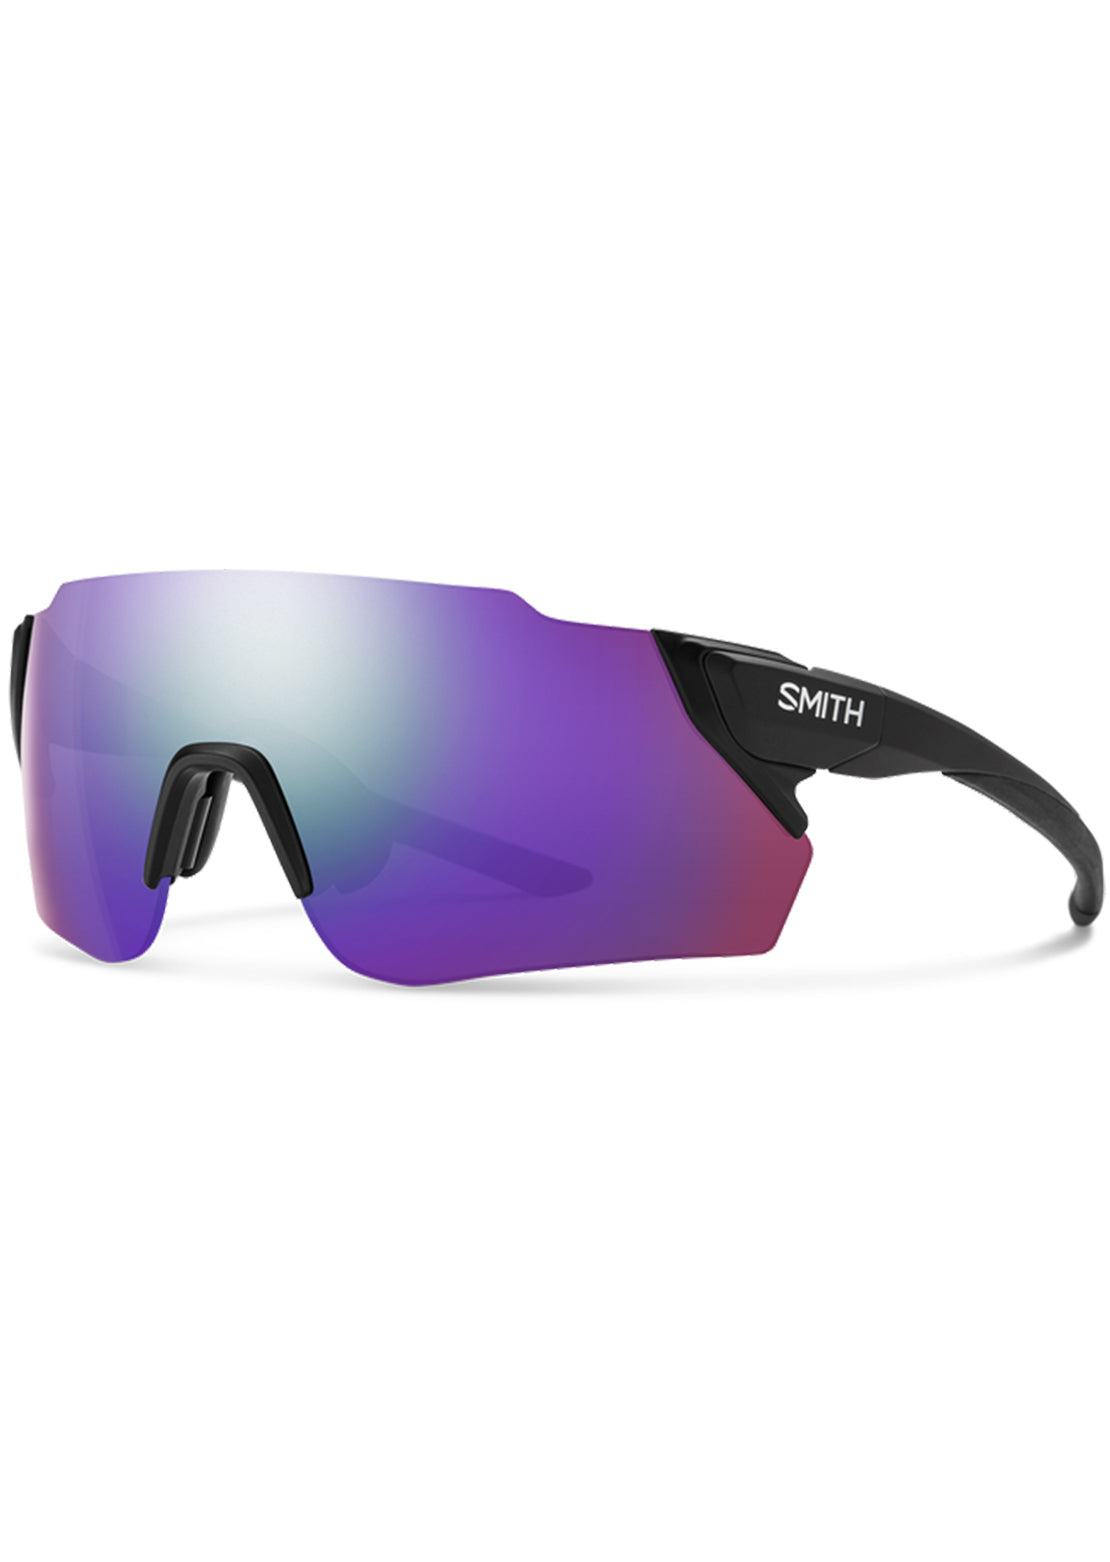 Smith Attack Mag Max Bike Sunglasses Matte Black/Chromapop Violet Mirror